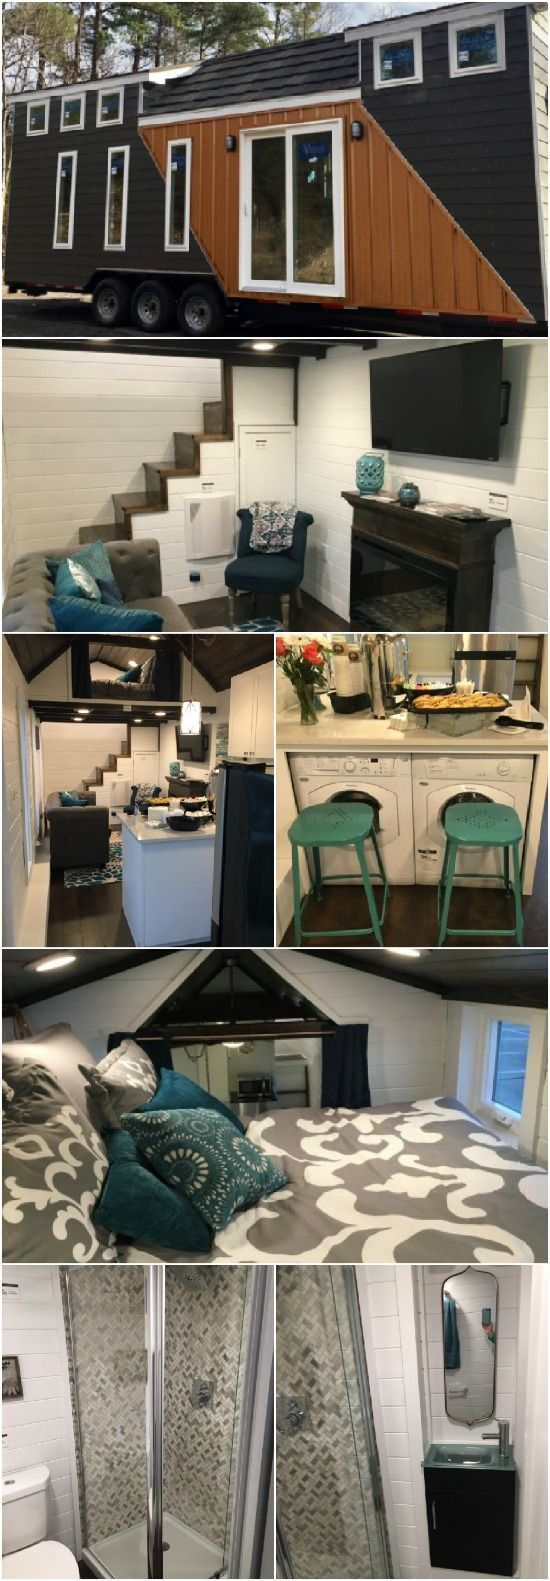 Alabama Builder Gives a Fresh Take on the Tiny House Movement with the Trinity Model - Meet Trinity. She's a 28 foot long 364 square foot tiny house built by Alabama Tiny Houses out of Mount Olive, Alabama. At first glance, you may think she doesn't have anything unique to offer, but wait until you see you the layout inside!